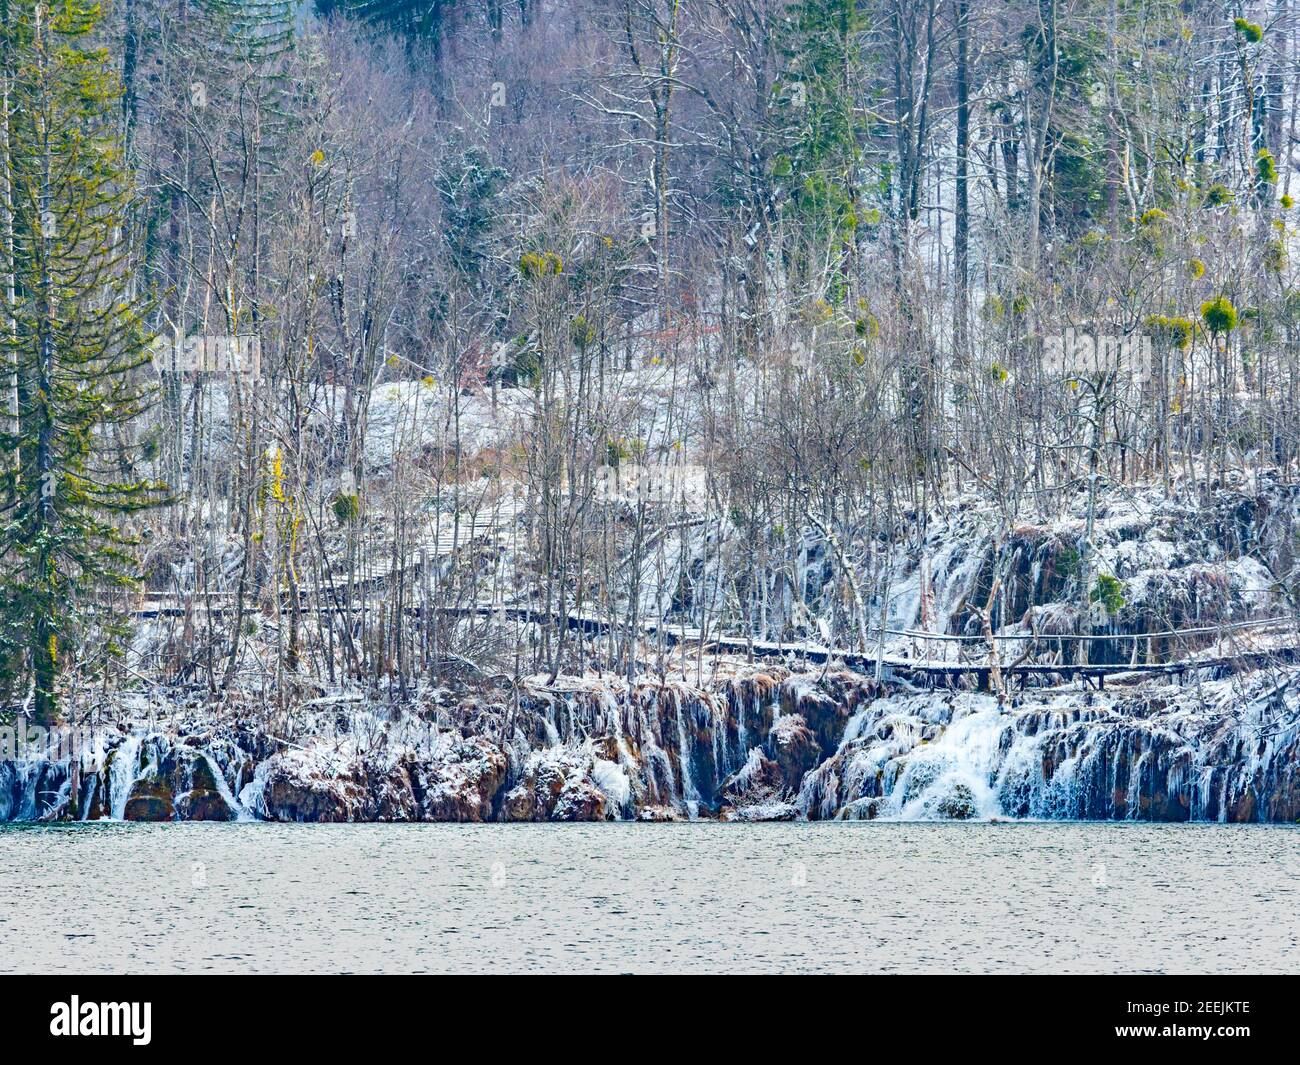 Trees forest vegetation in national park Plitvice lakes Croatia Europe Winter under covered cover snow ice waterflow water flowing flow Stock Photo